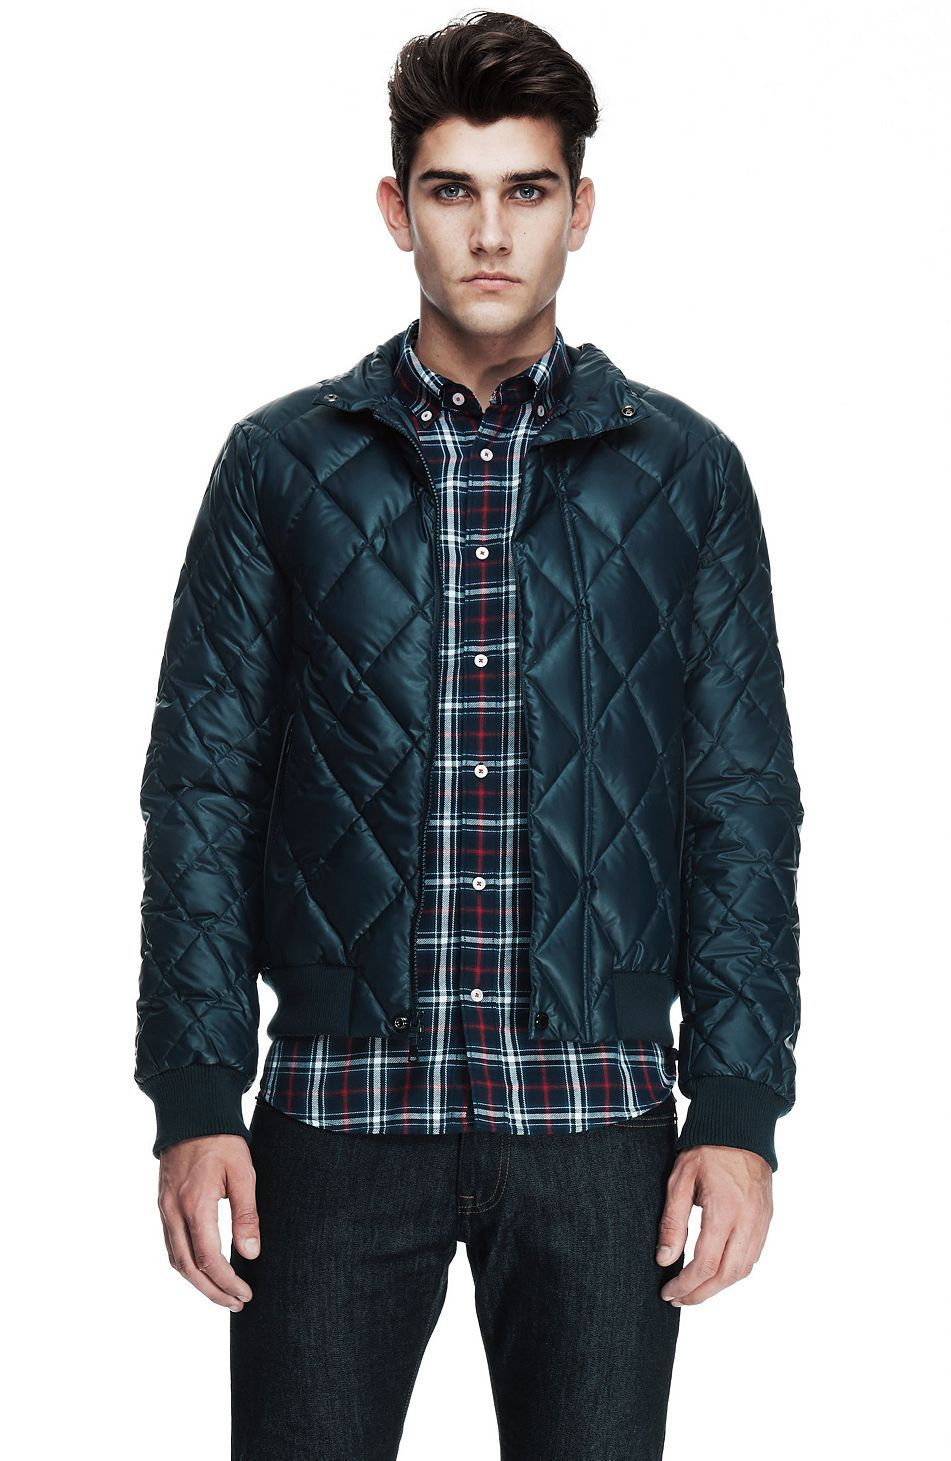 Designer Clothing At Armani Exchange Outerwear Jackets Outfit Accessories Armani [ 1461 x 951 Pixel ]